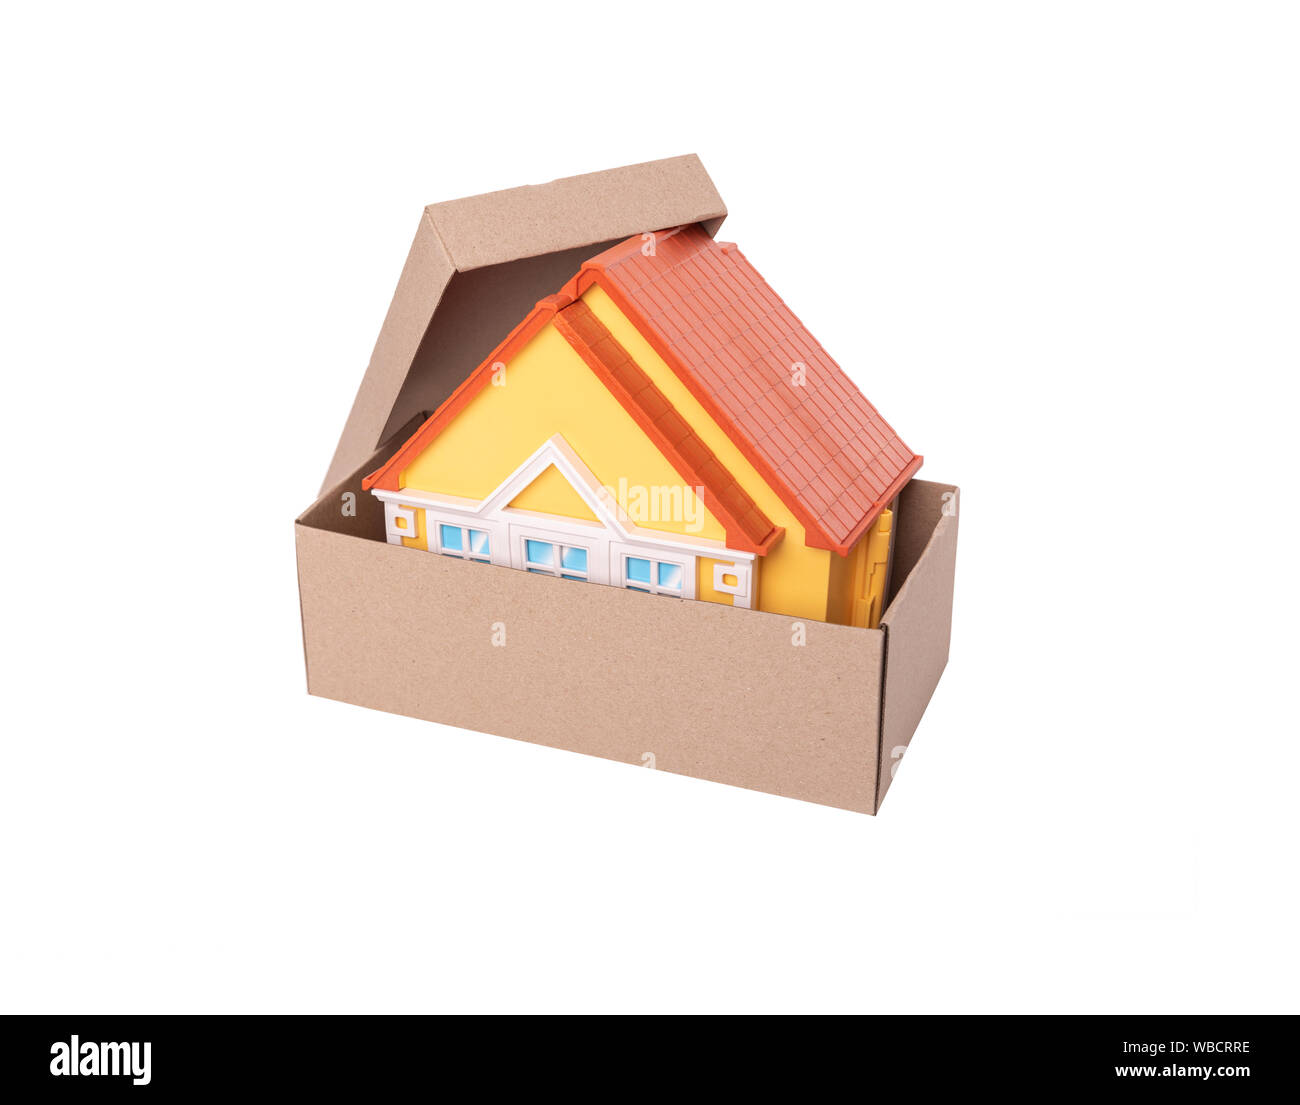 Toy Model Of A House In A Cardboard Box On White Background